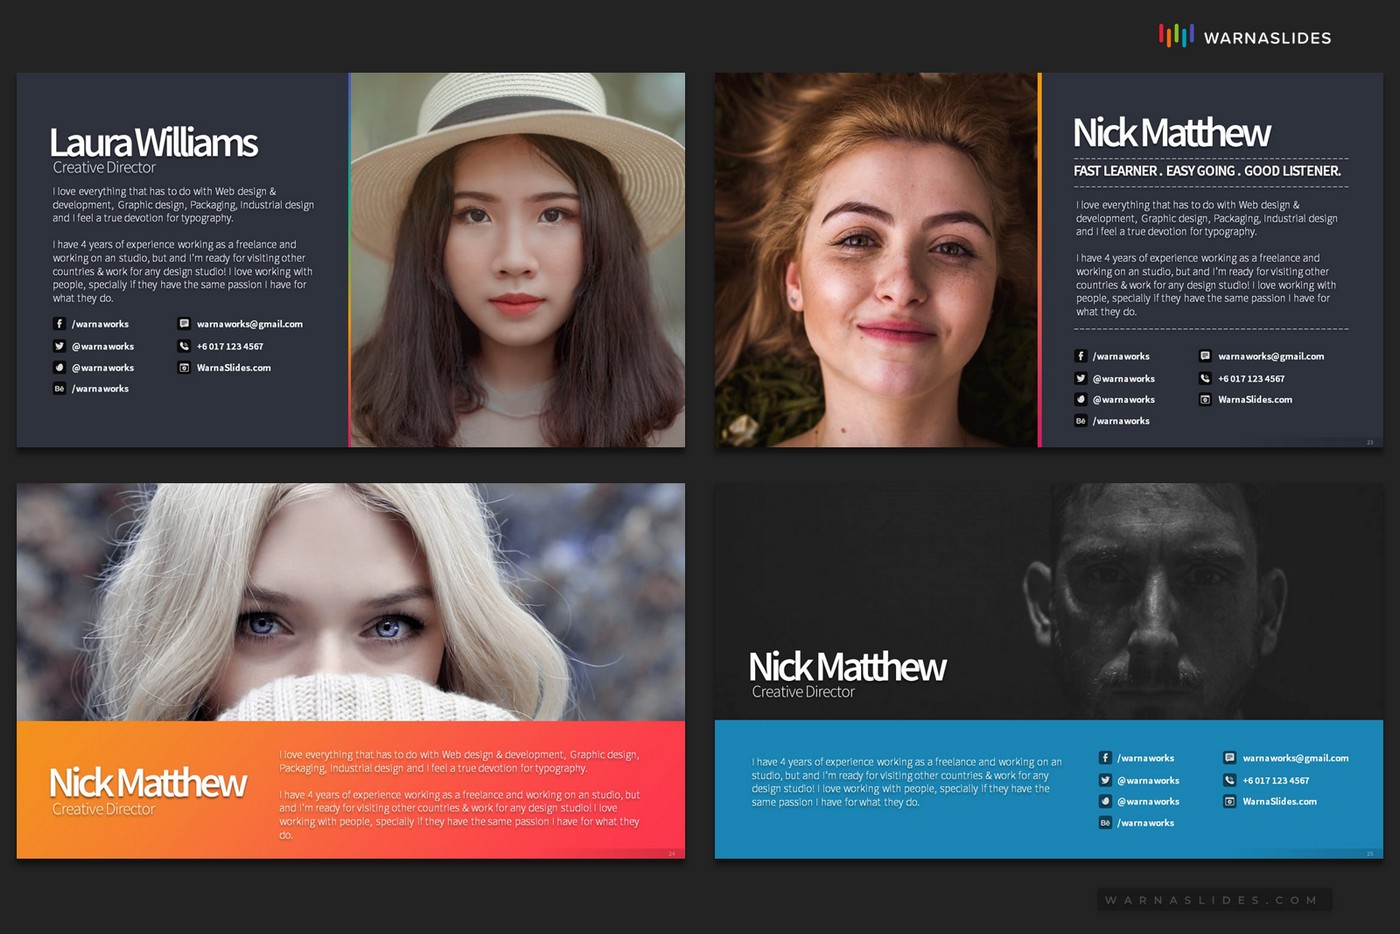 About-Me-Resume-Profile-PowerPoint-Template-2020-Skill-Expertise-for-Business-Pitch-Deck-Professional-Creative-Presentation-by-Warna-Slides-011